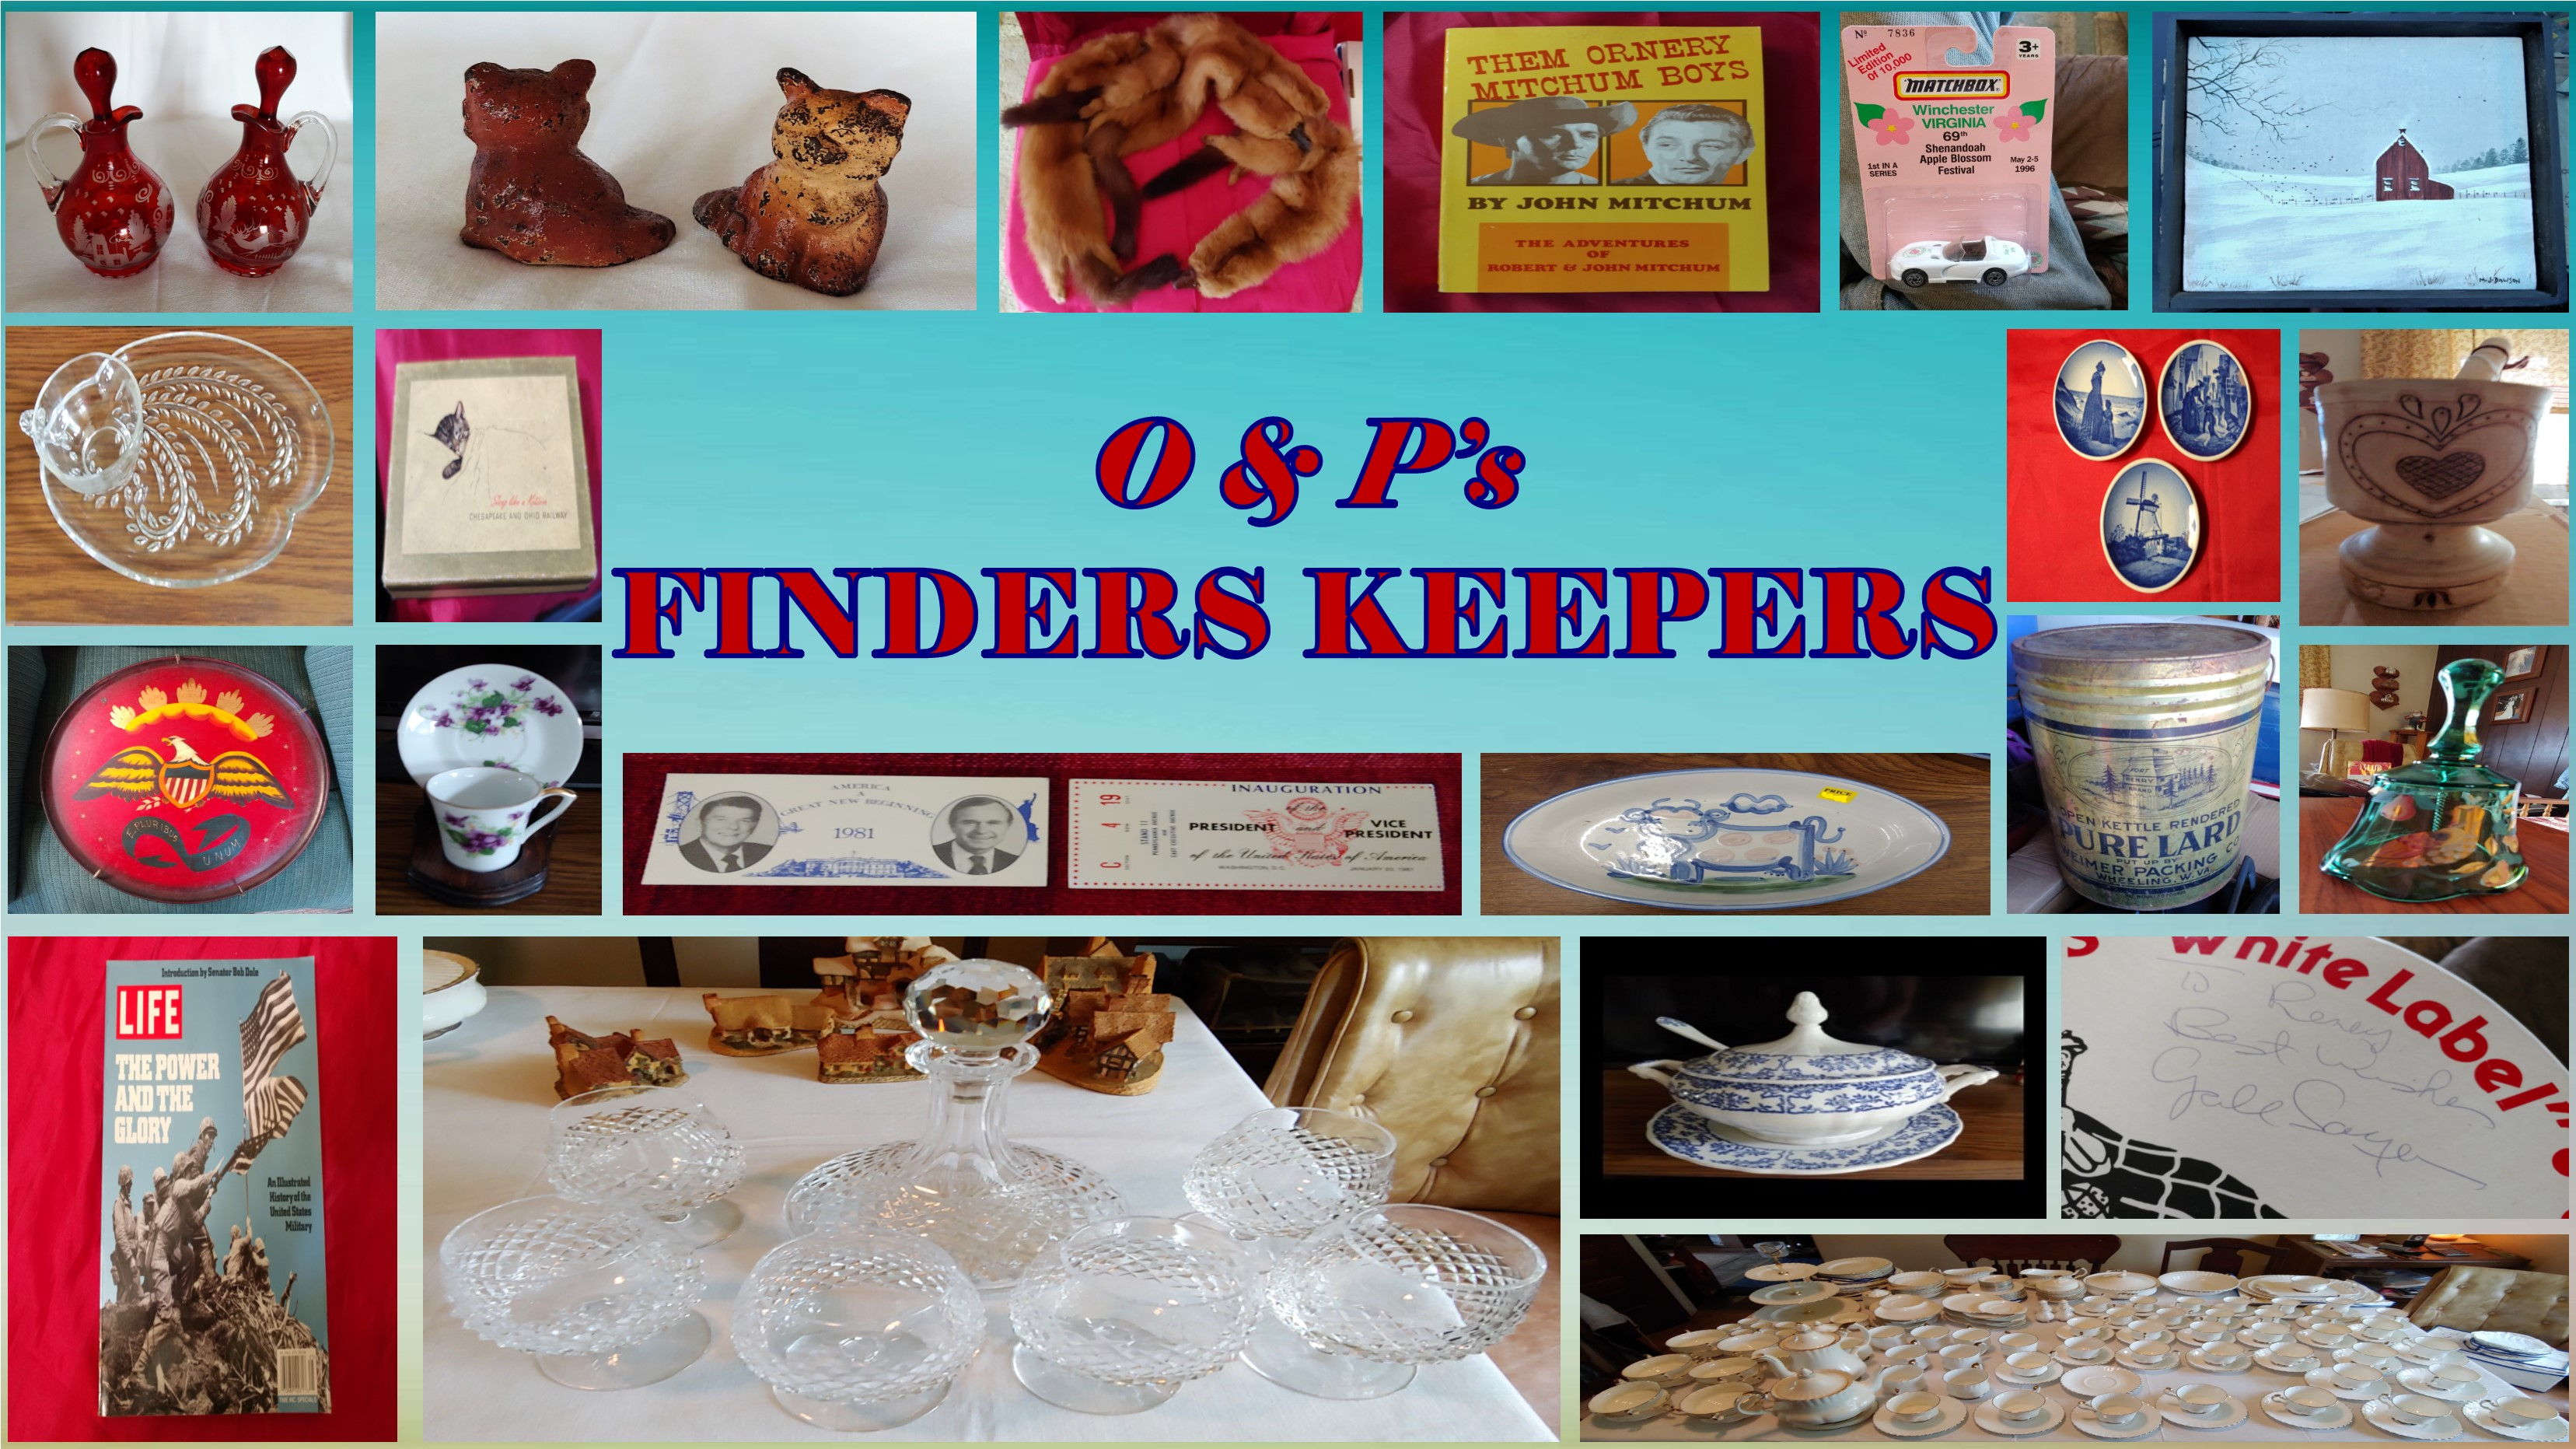 O & P's Finders Keepers